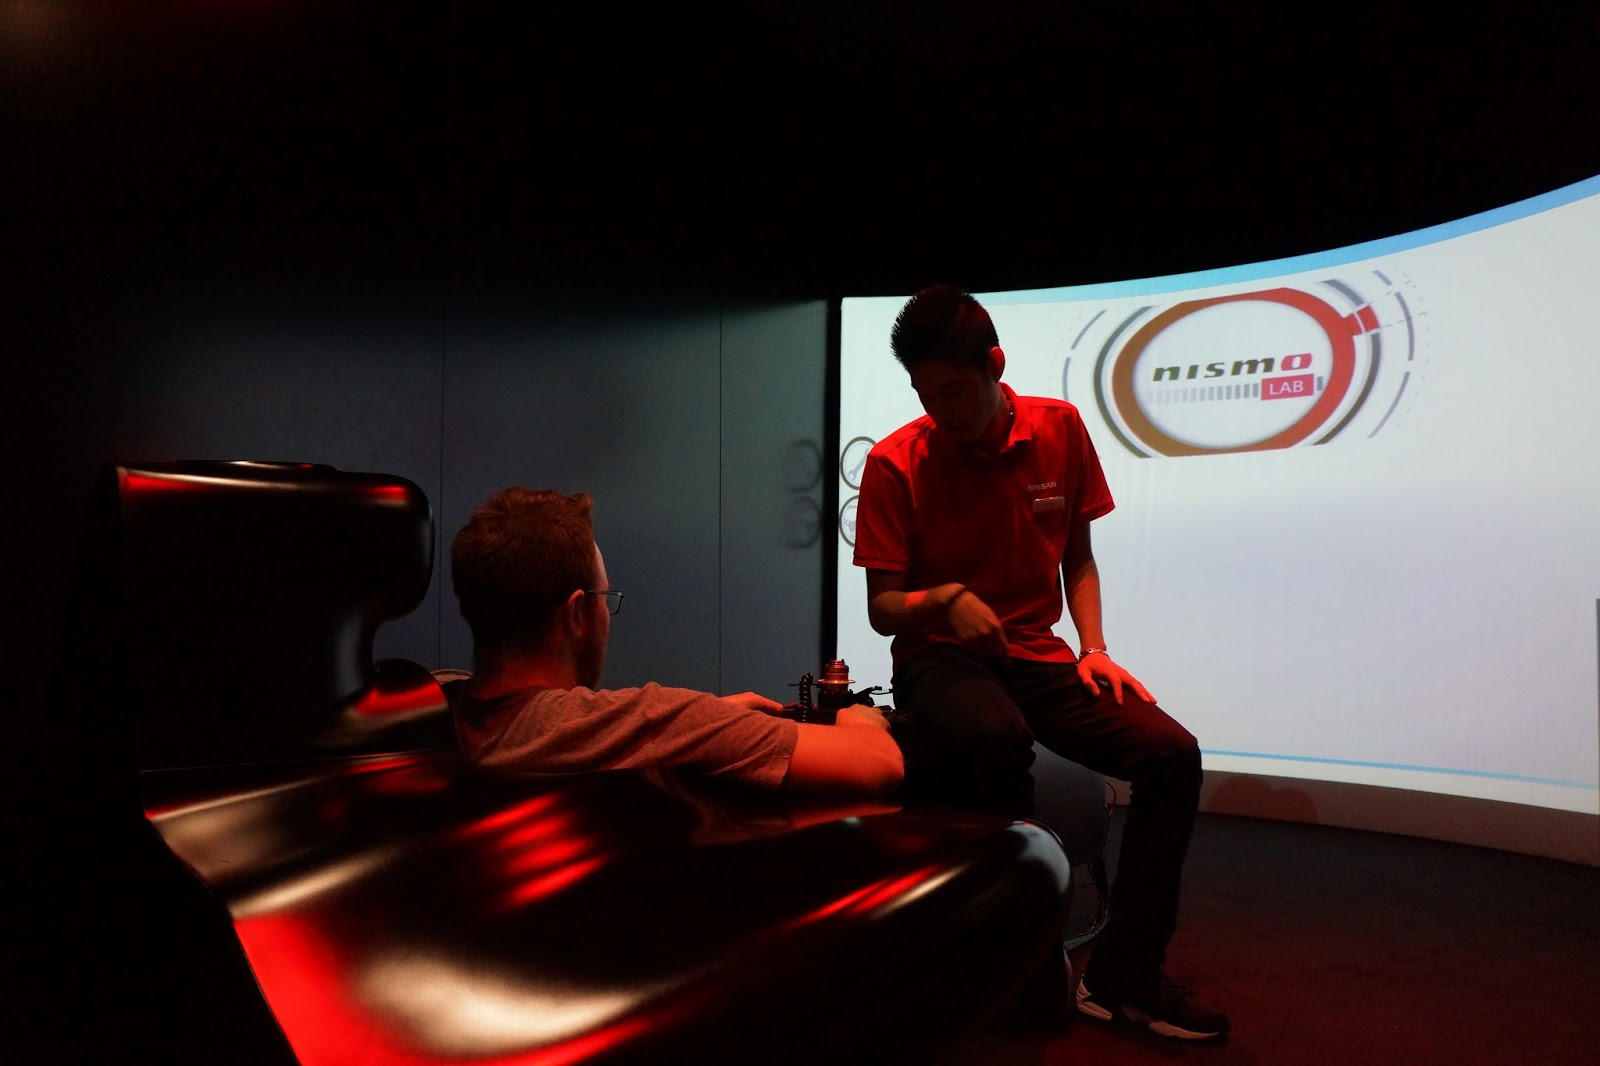 race car simulation at nissan innovation station at the o2